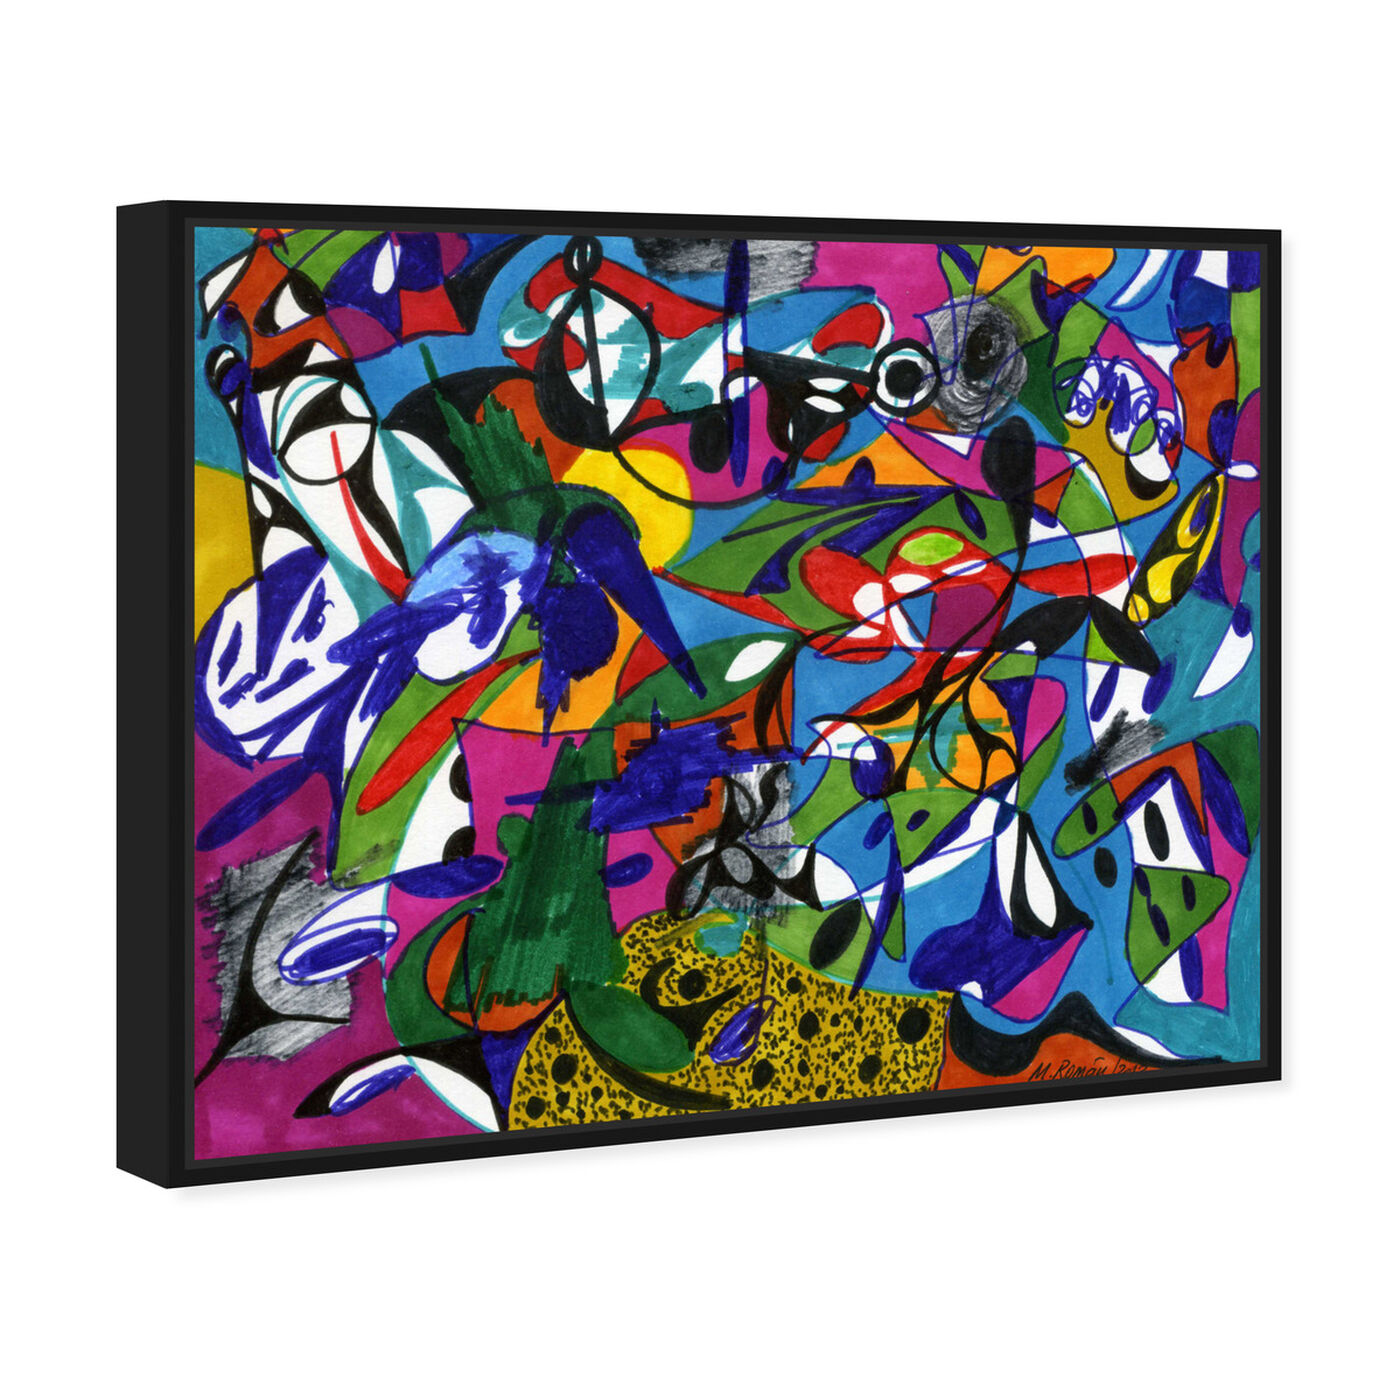 Angled view of Cacophony featuring abstract and shapes art.